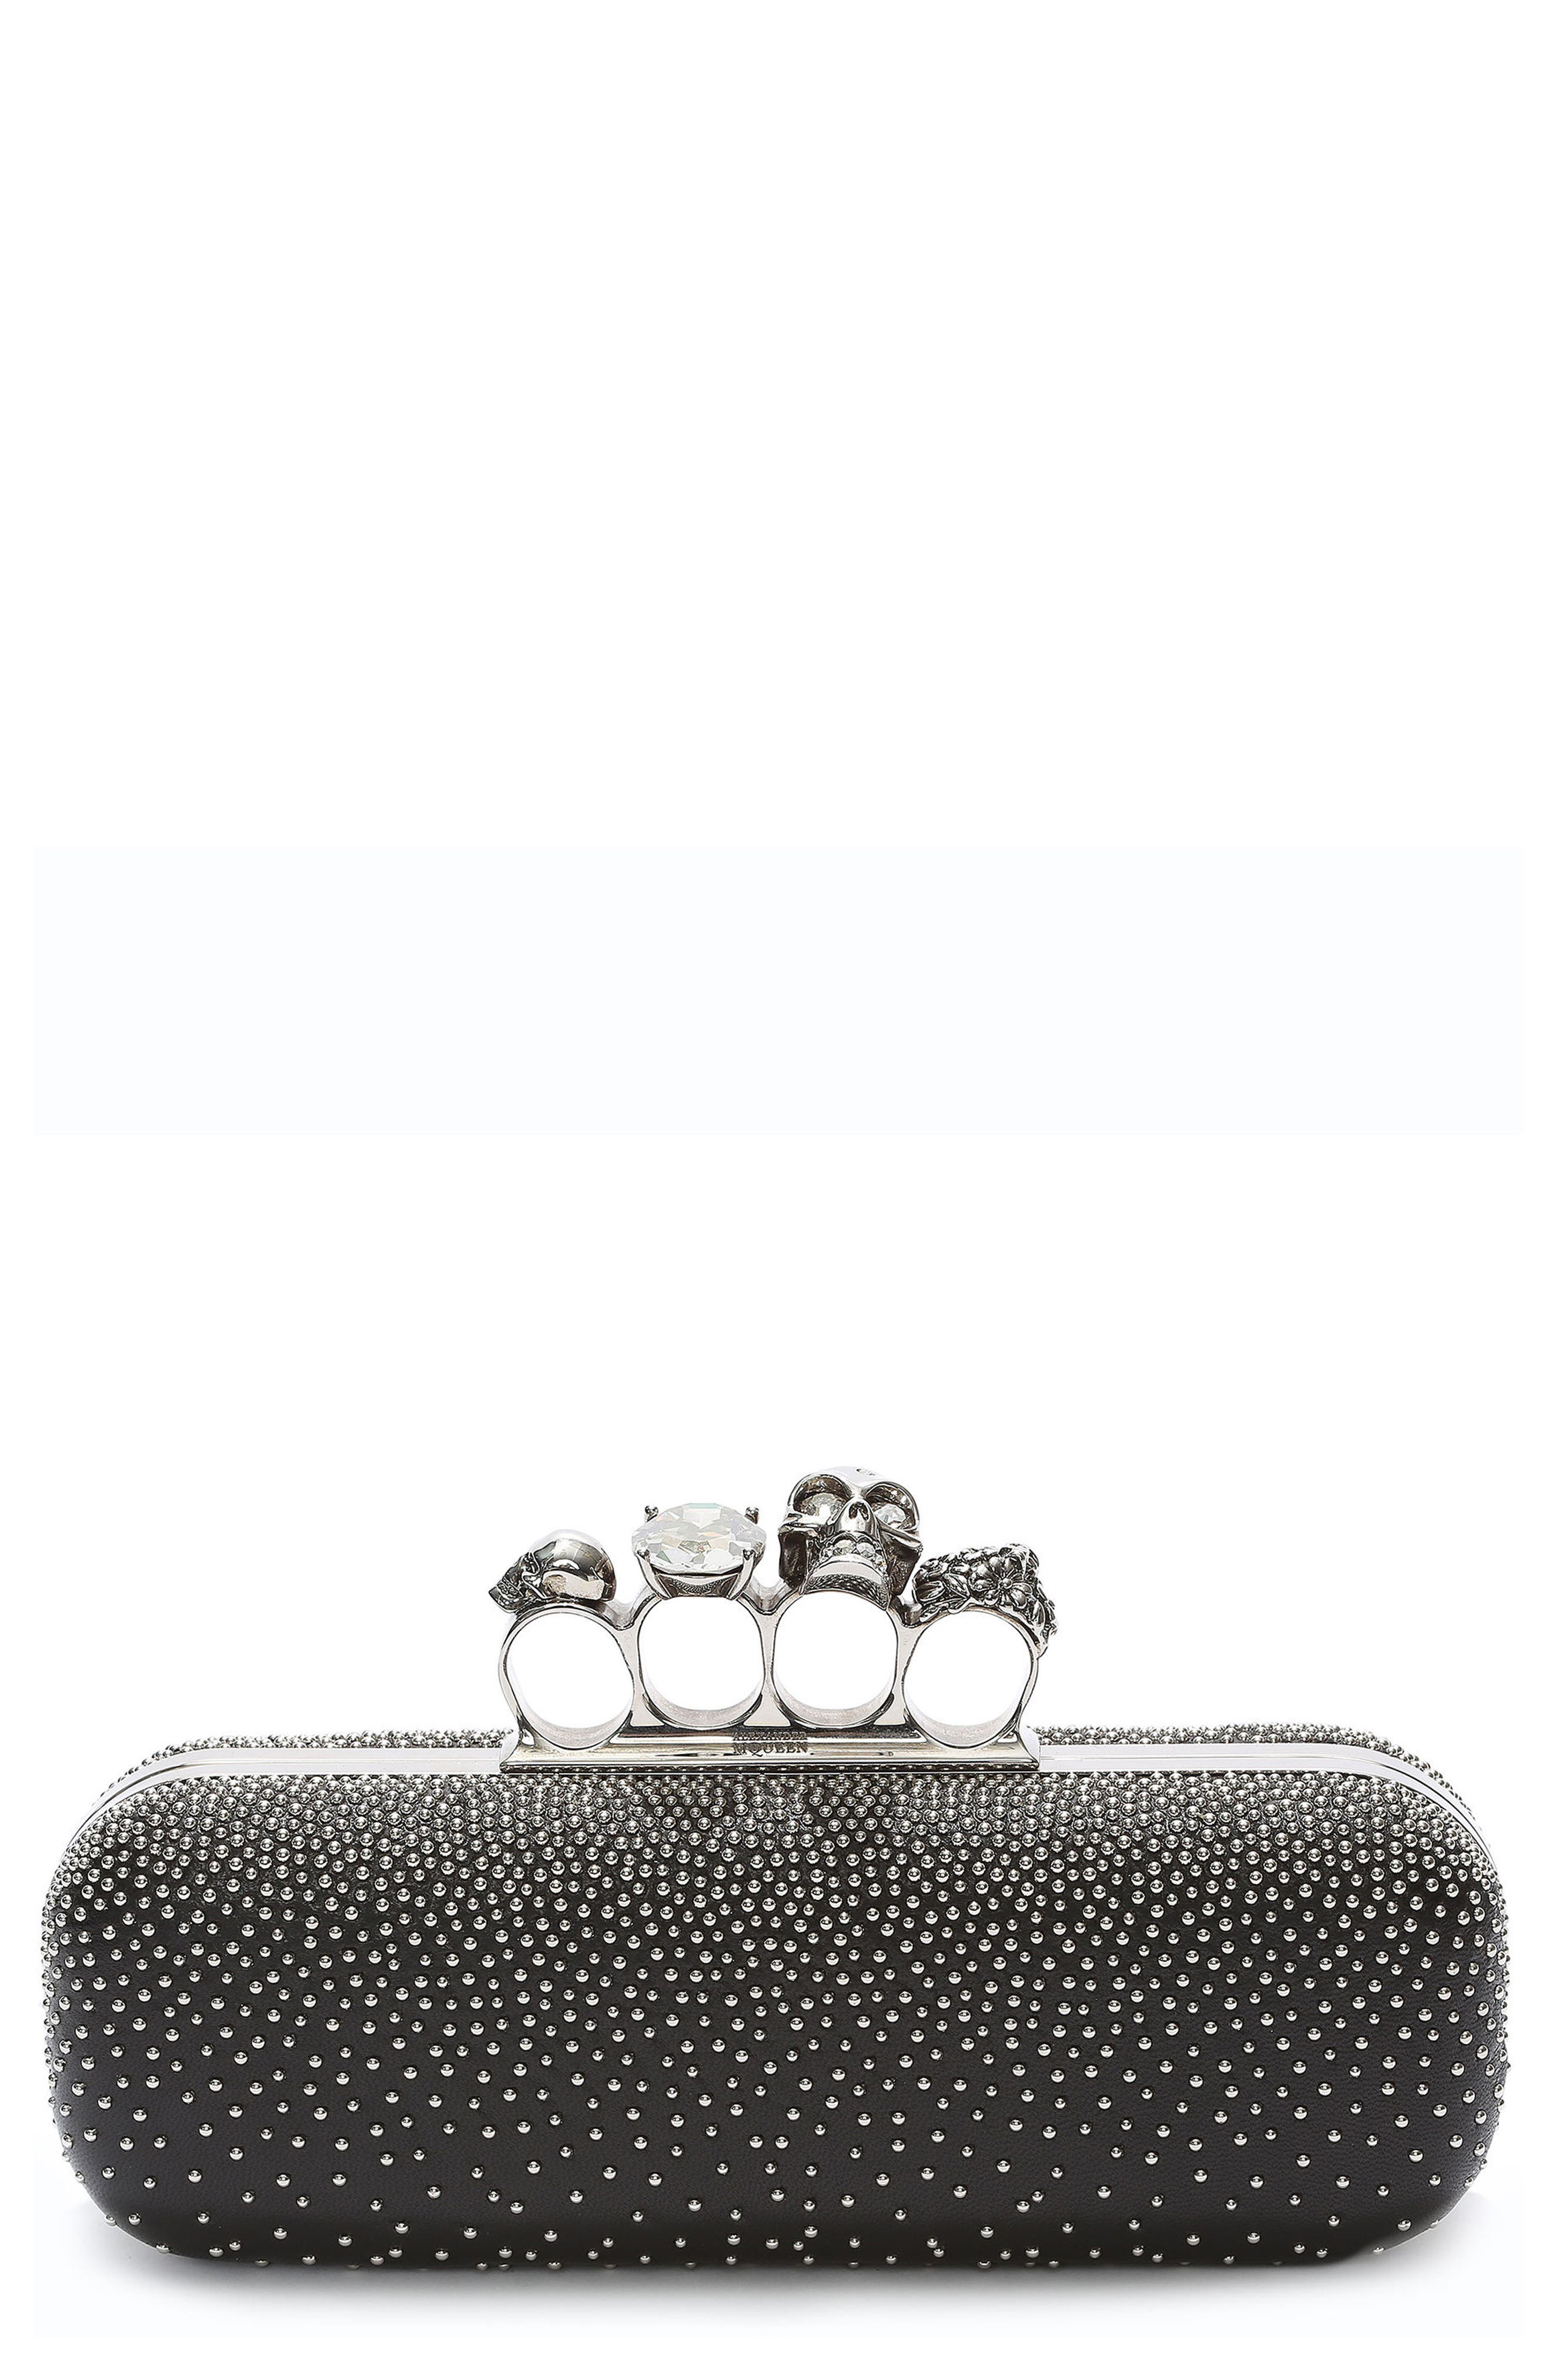 Alternate Image 1 Selected - Alexander McQueen Studded Lambskin Leather Knuckle Clutch